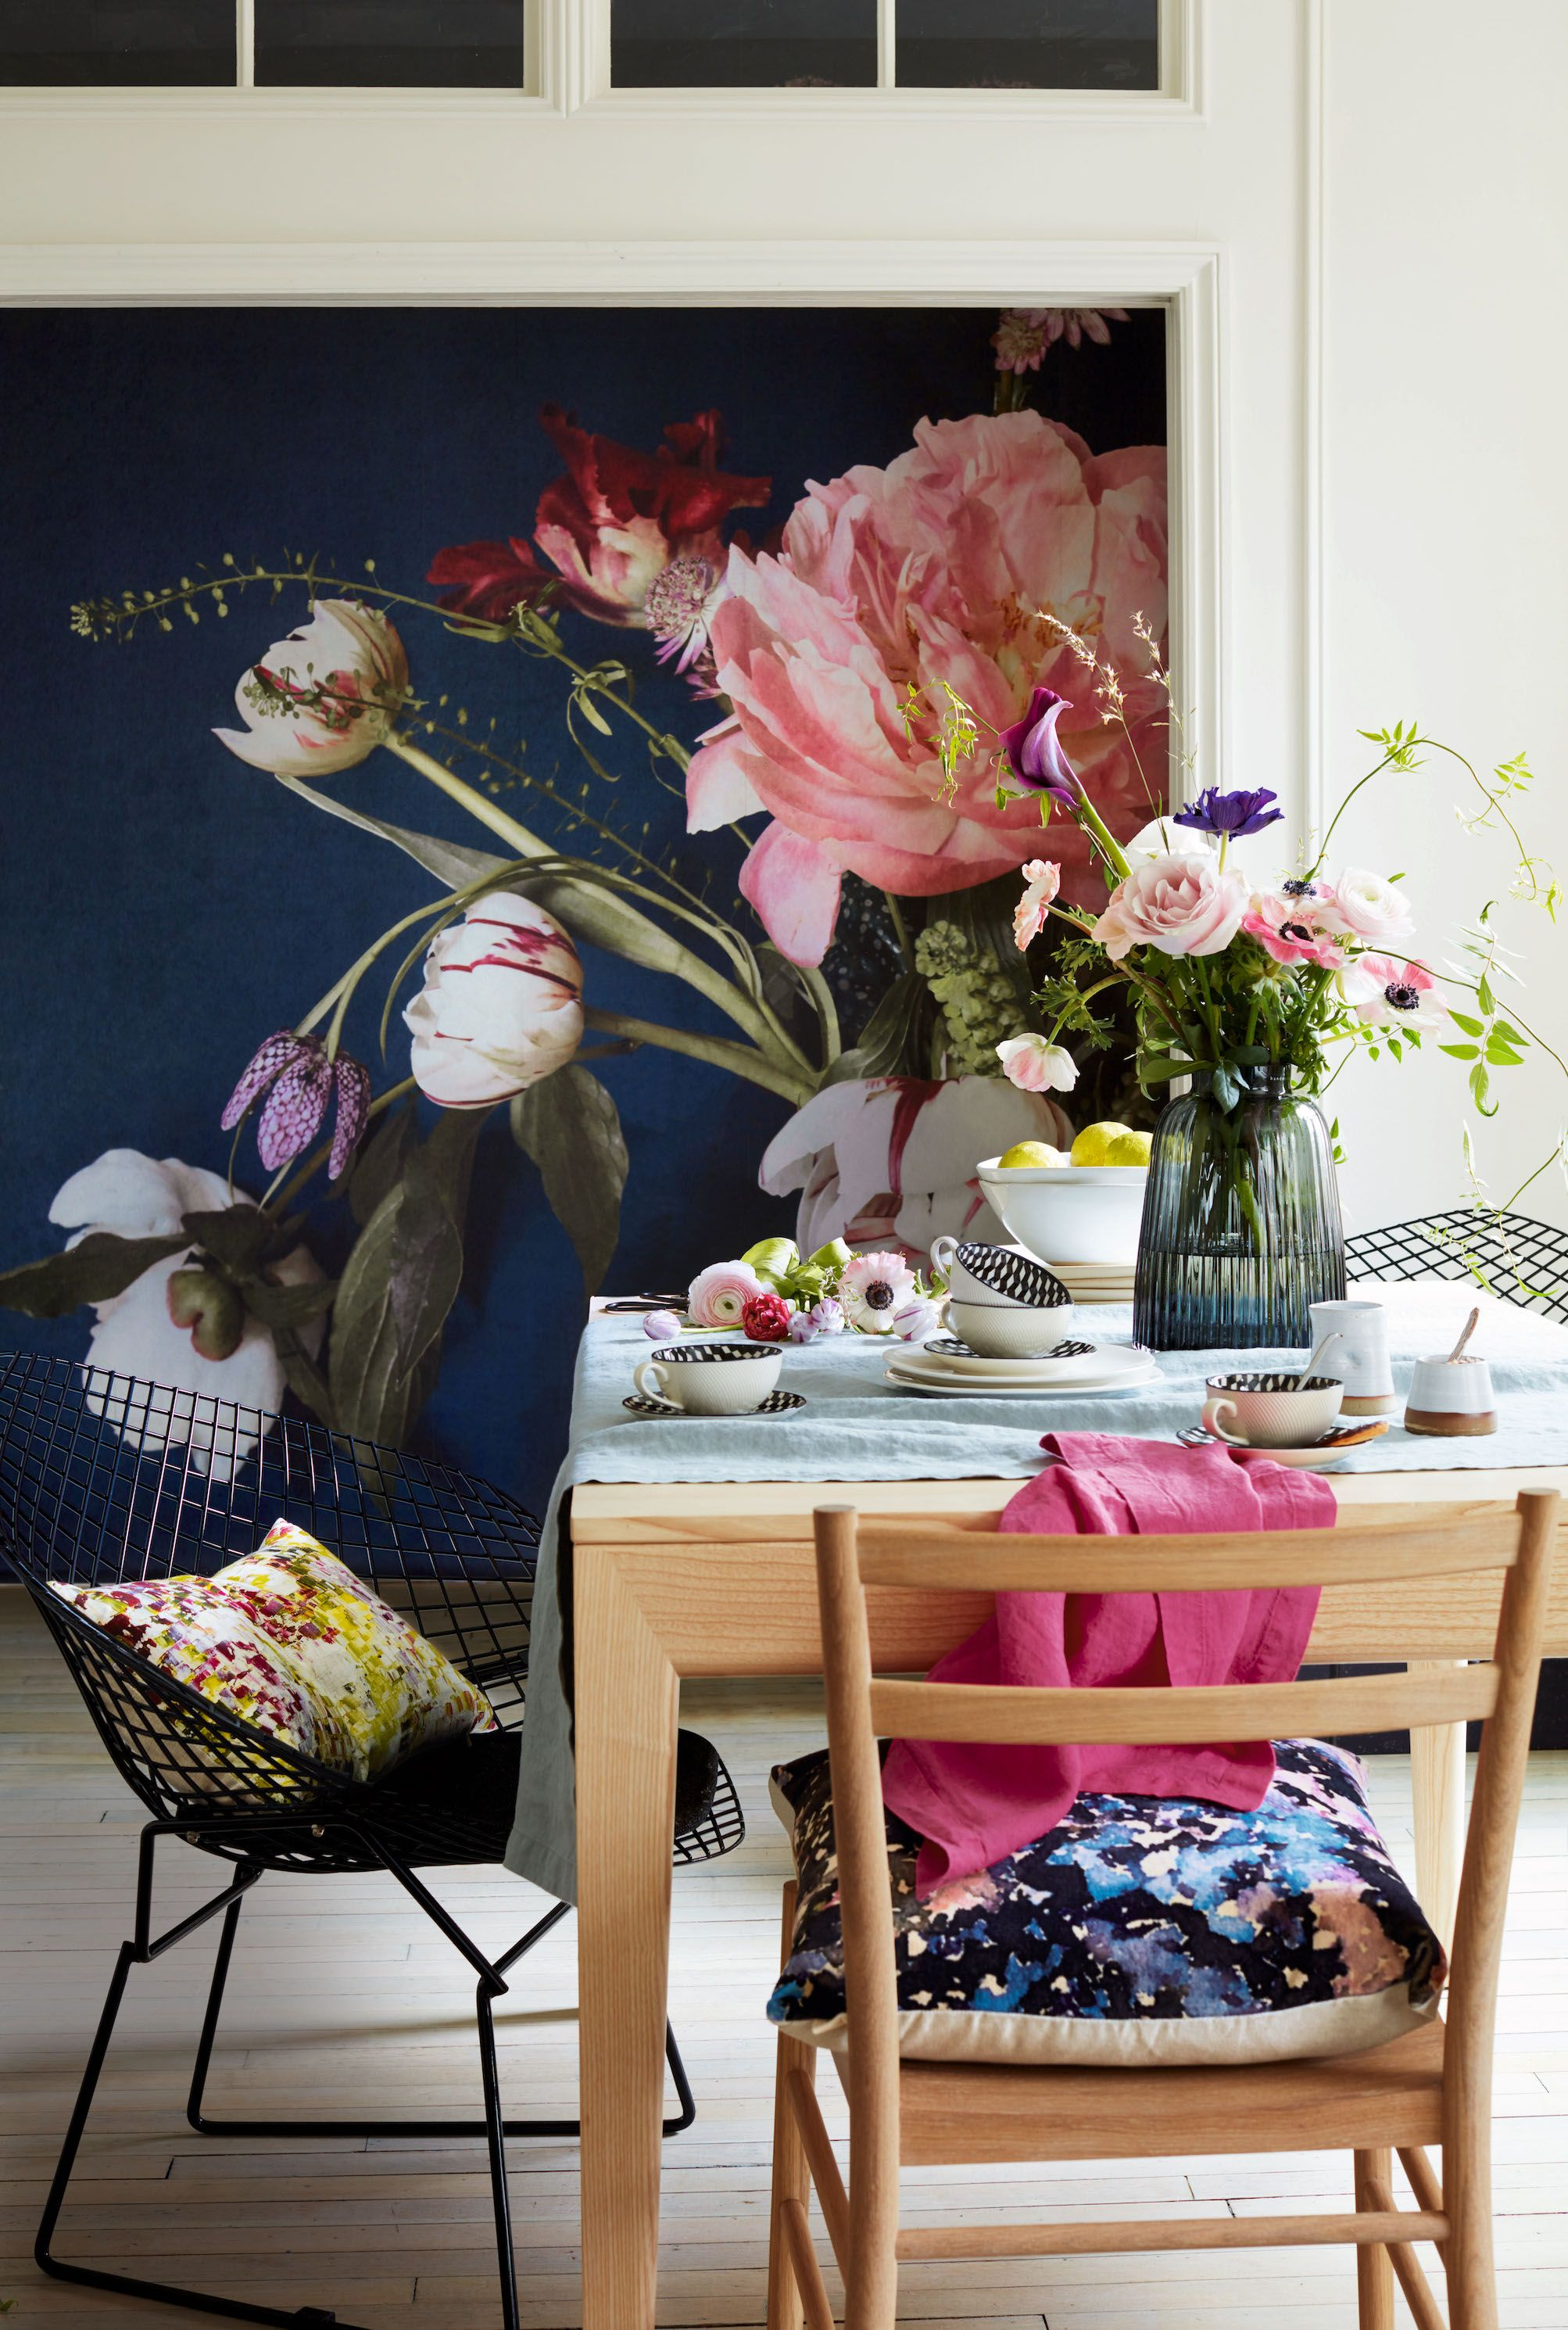 Floral style inspiration